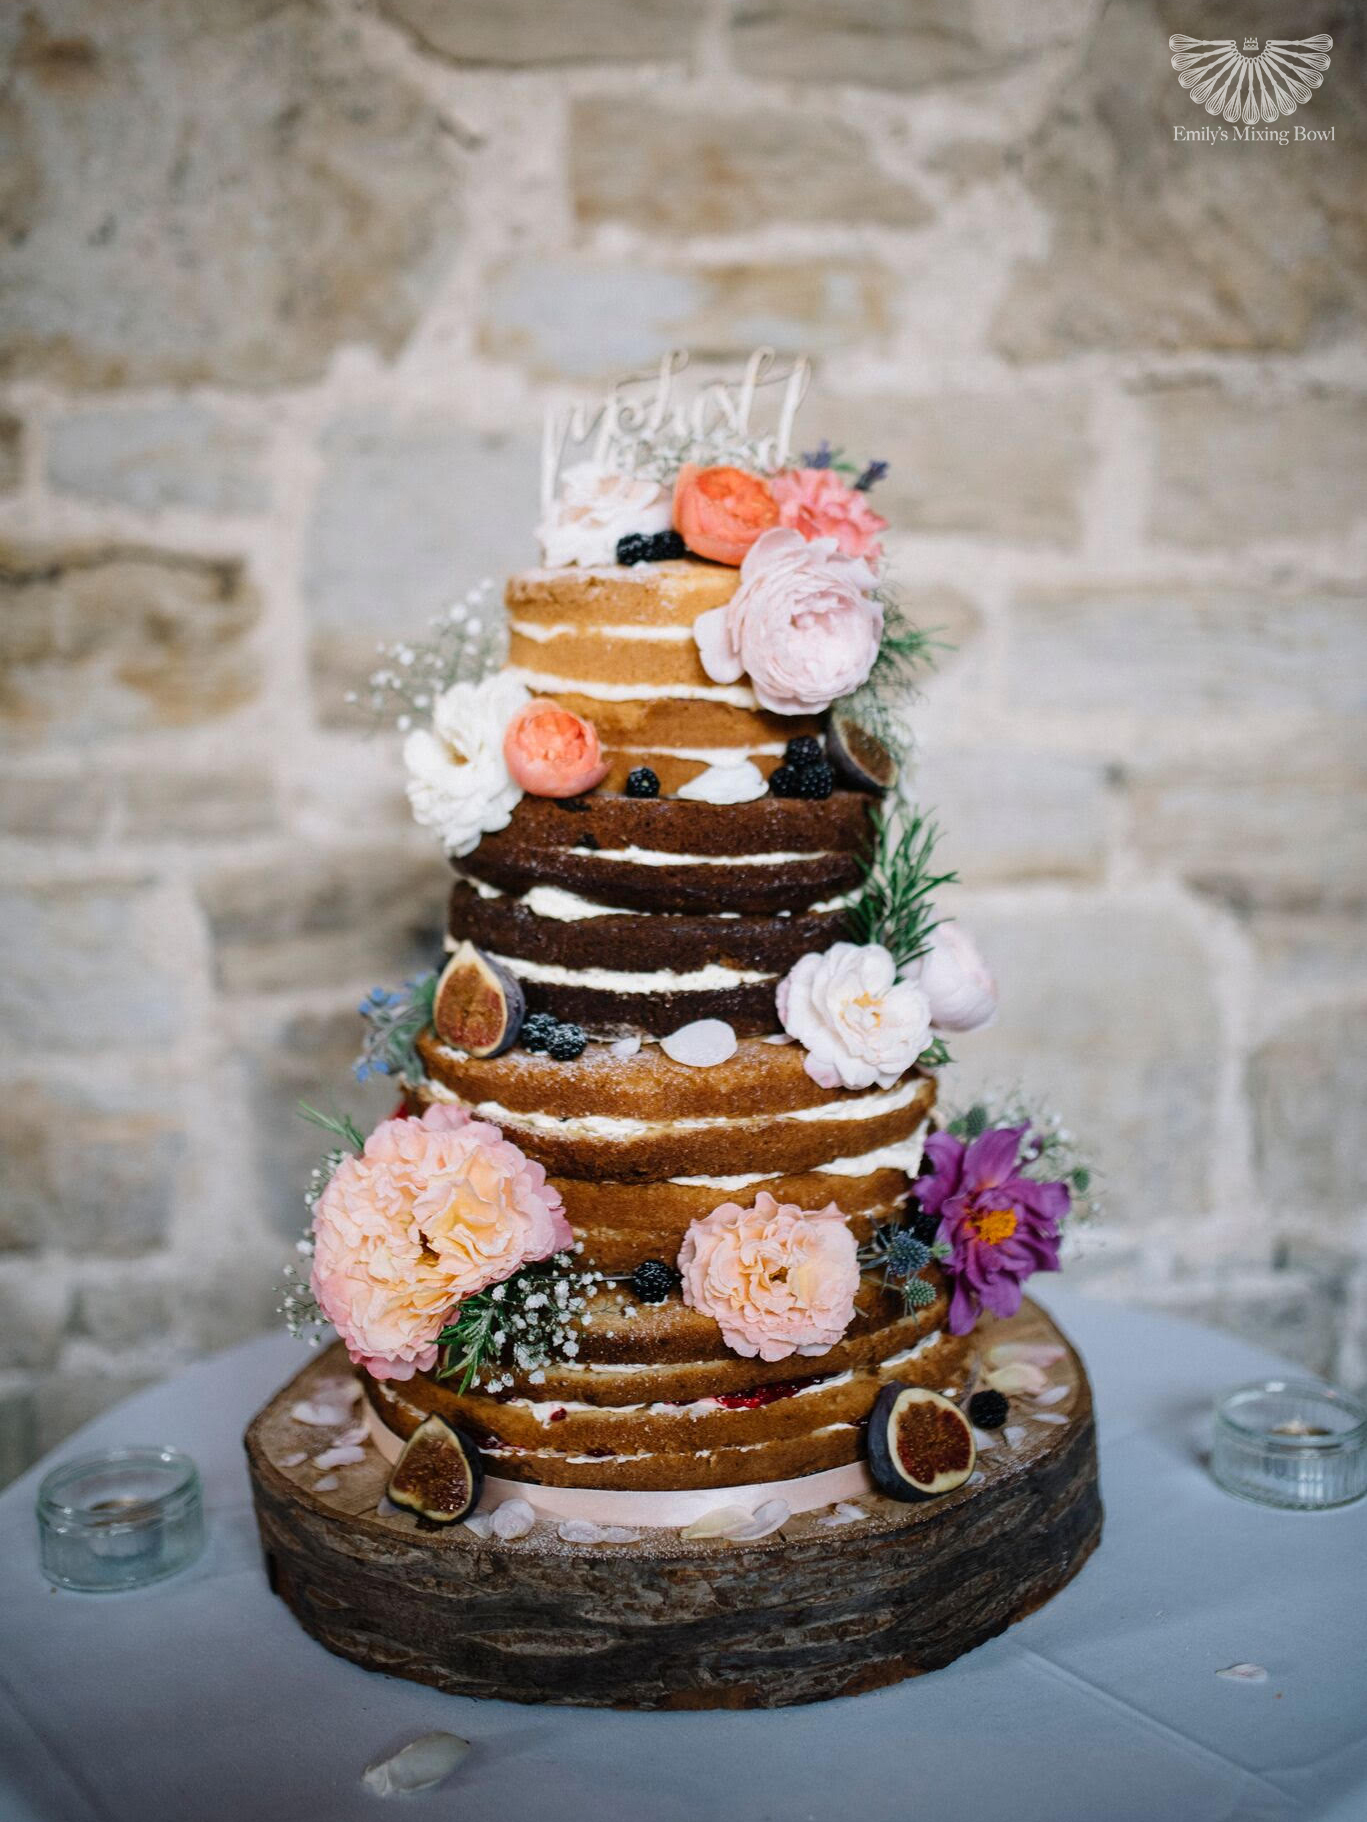 wedding cakes south east england bespoke wedding cakes east sussex emily s mixing bowl 25489